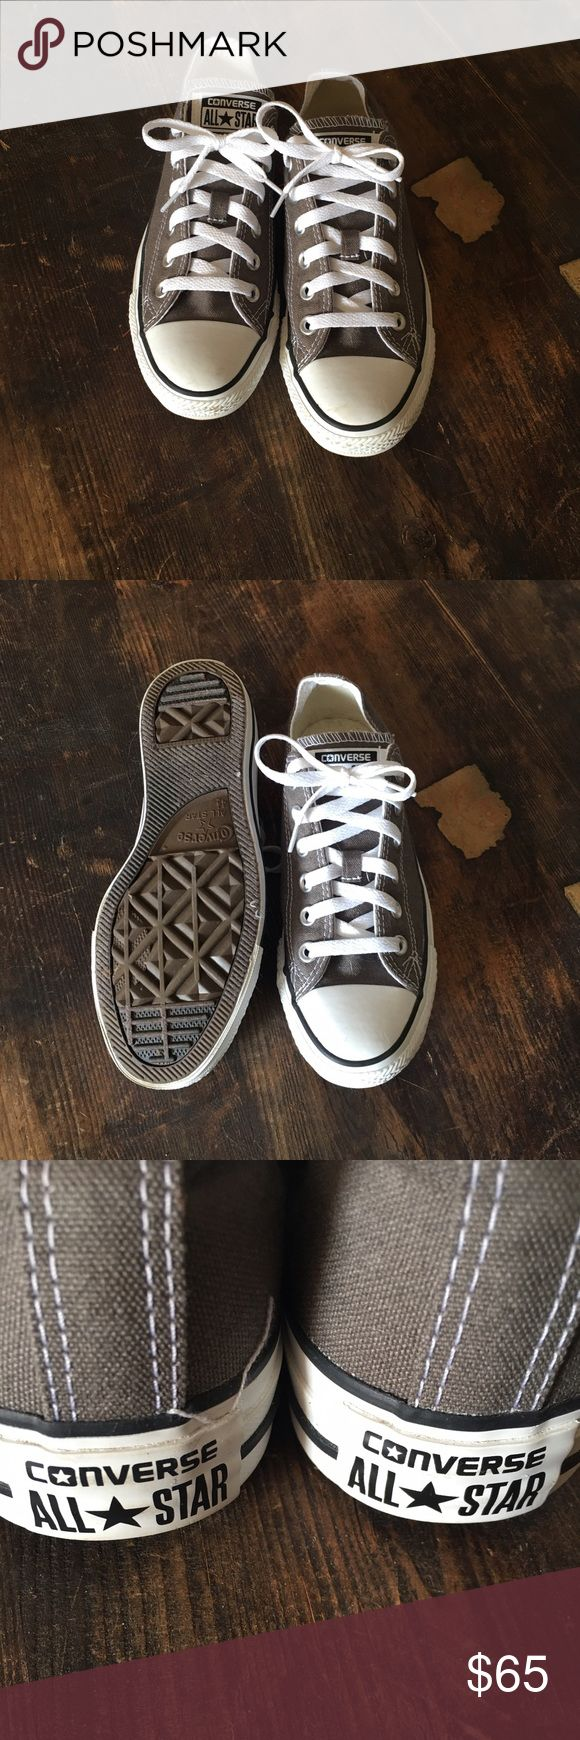 Women's Converse All Stars Only worn in house to try on and never worn again!  NWOT!! Size 6.5 Converse Shoes Sneakers